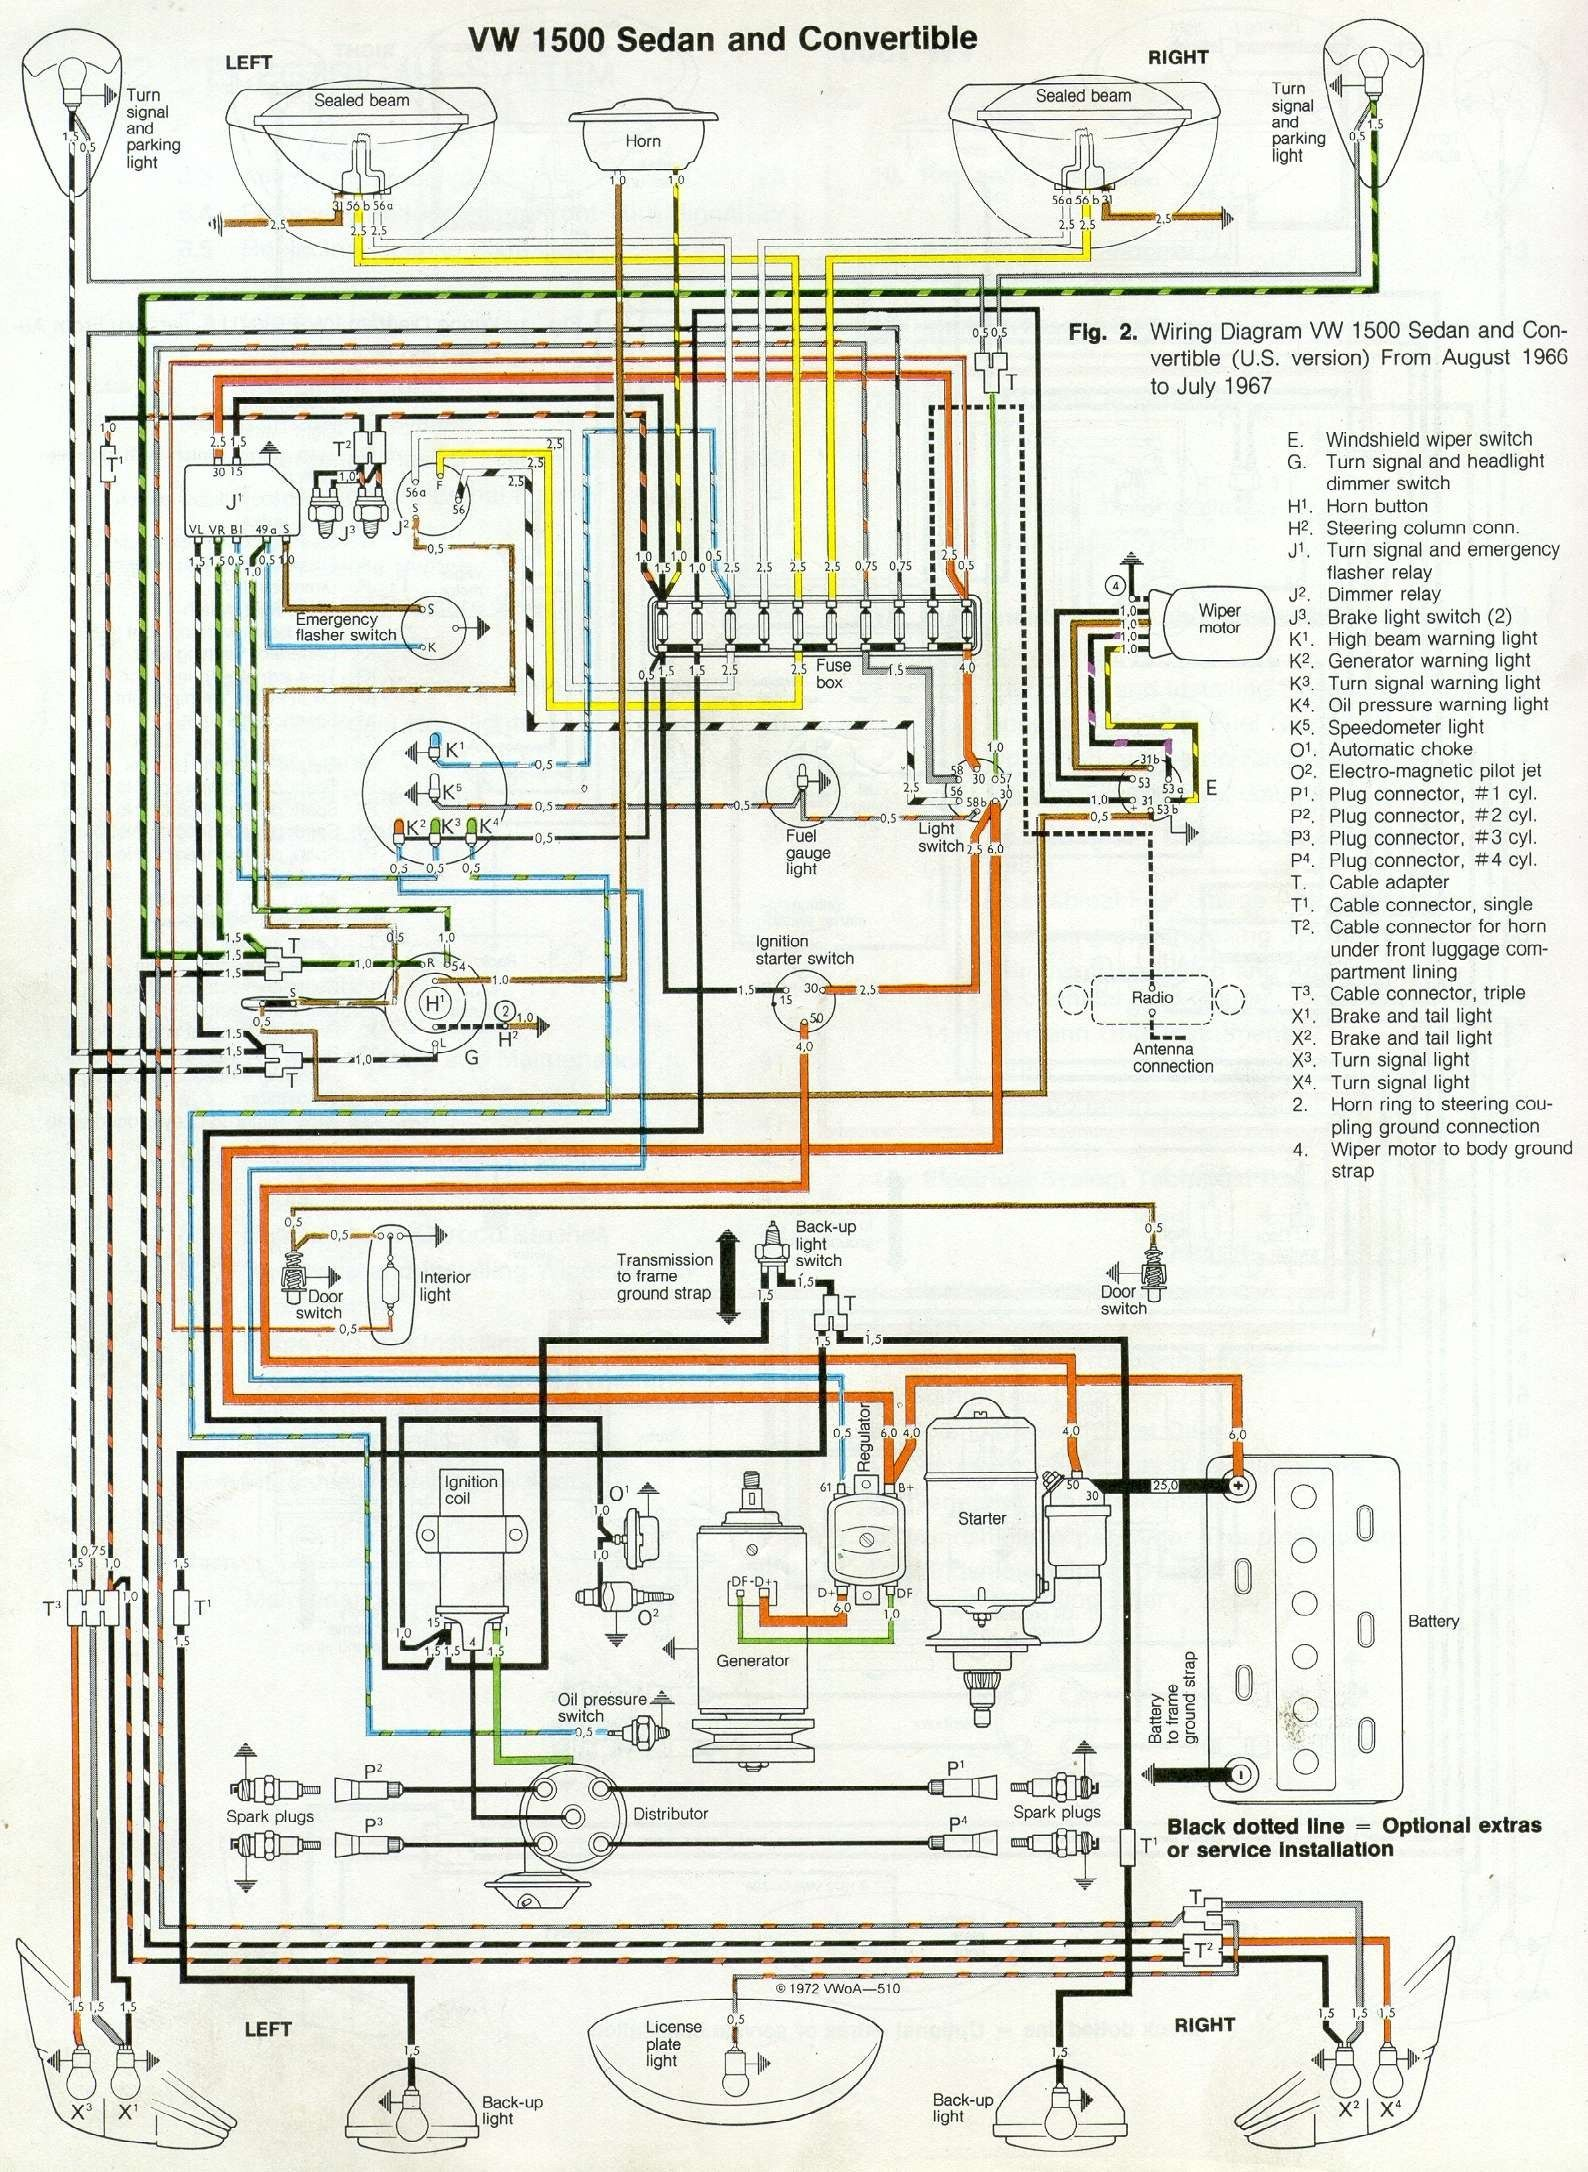 4242b403314c20cc70fd2f9bfdeb7727 66 and '67 vw beetle wiring diagram vw beetles, beetles and EZ Wiring Harness Diagram Chevy at edmiracle.co